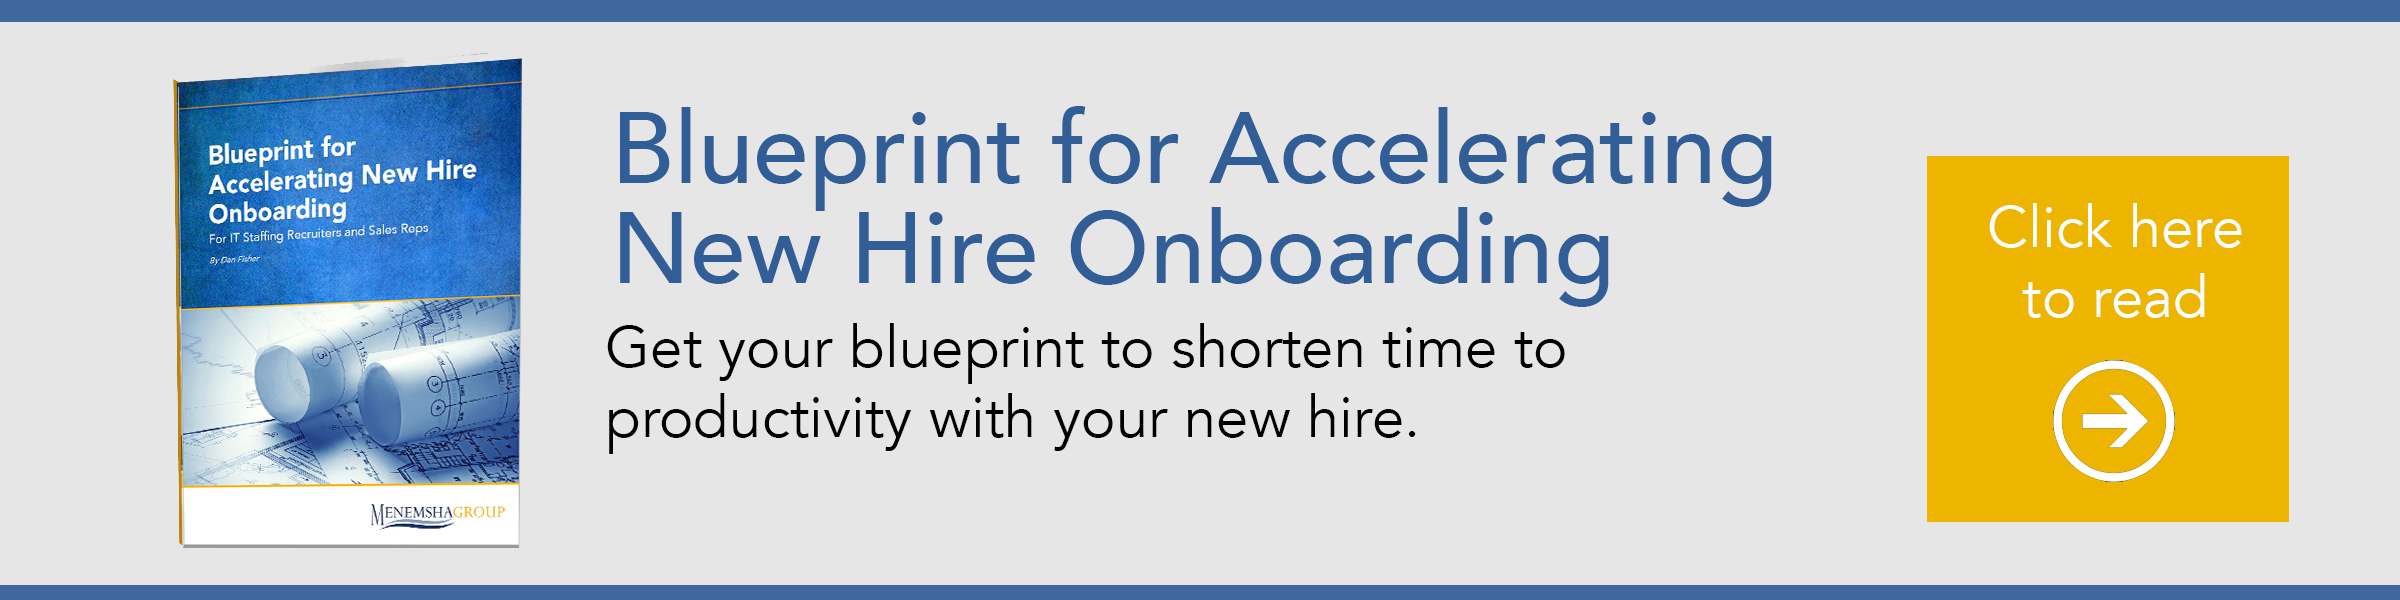 Download Blueprint for Accelerating New Hire Onboarding